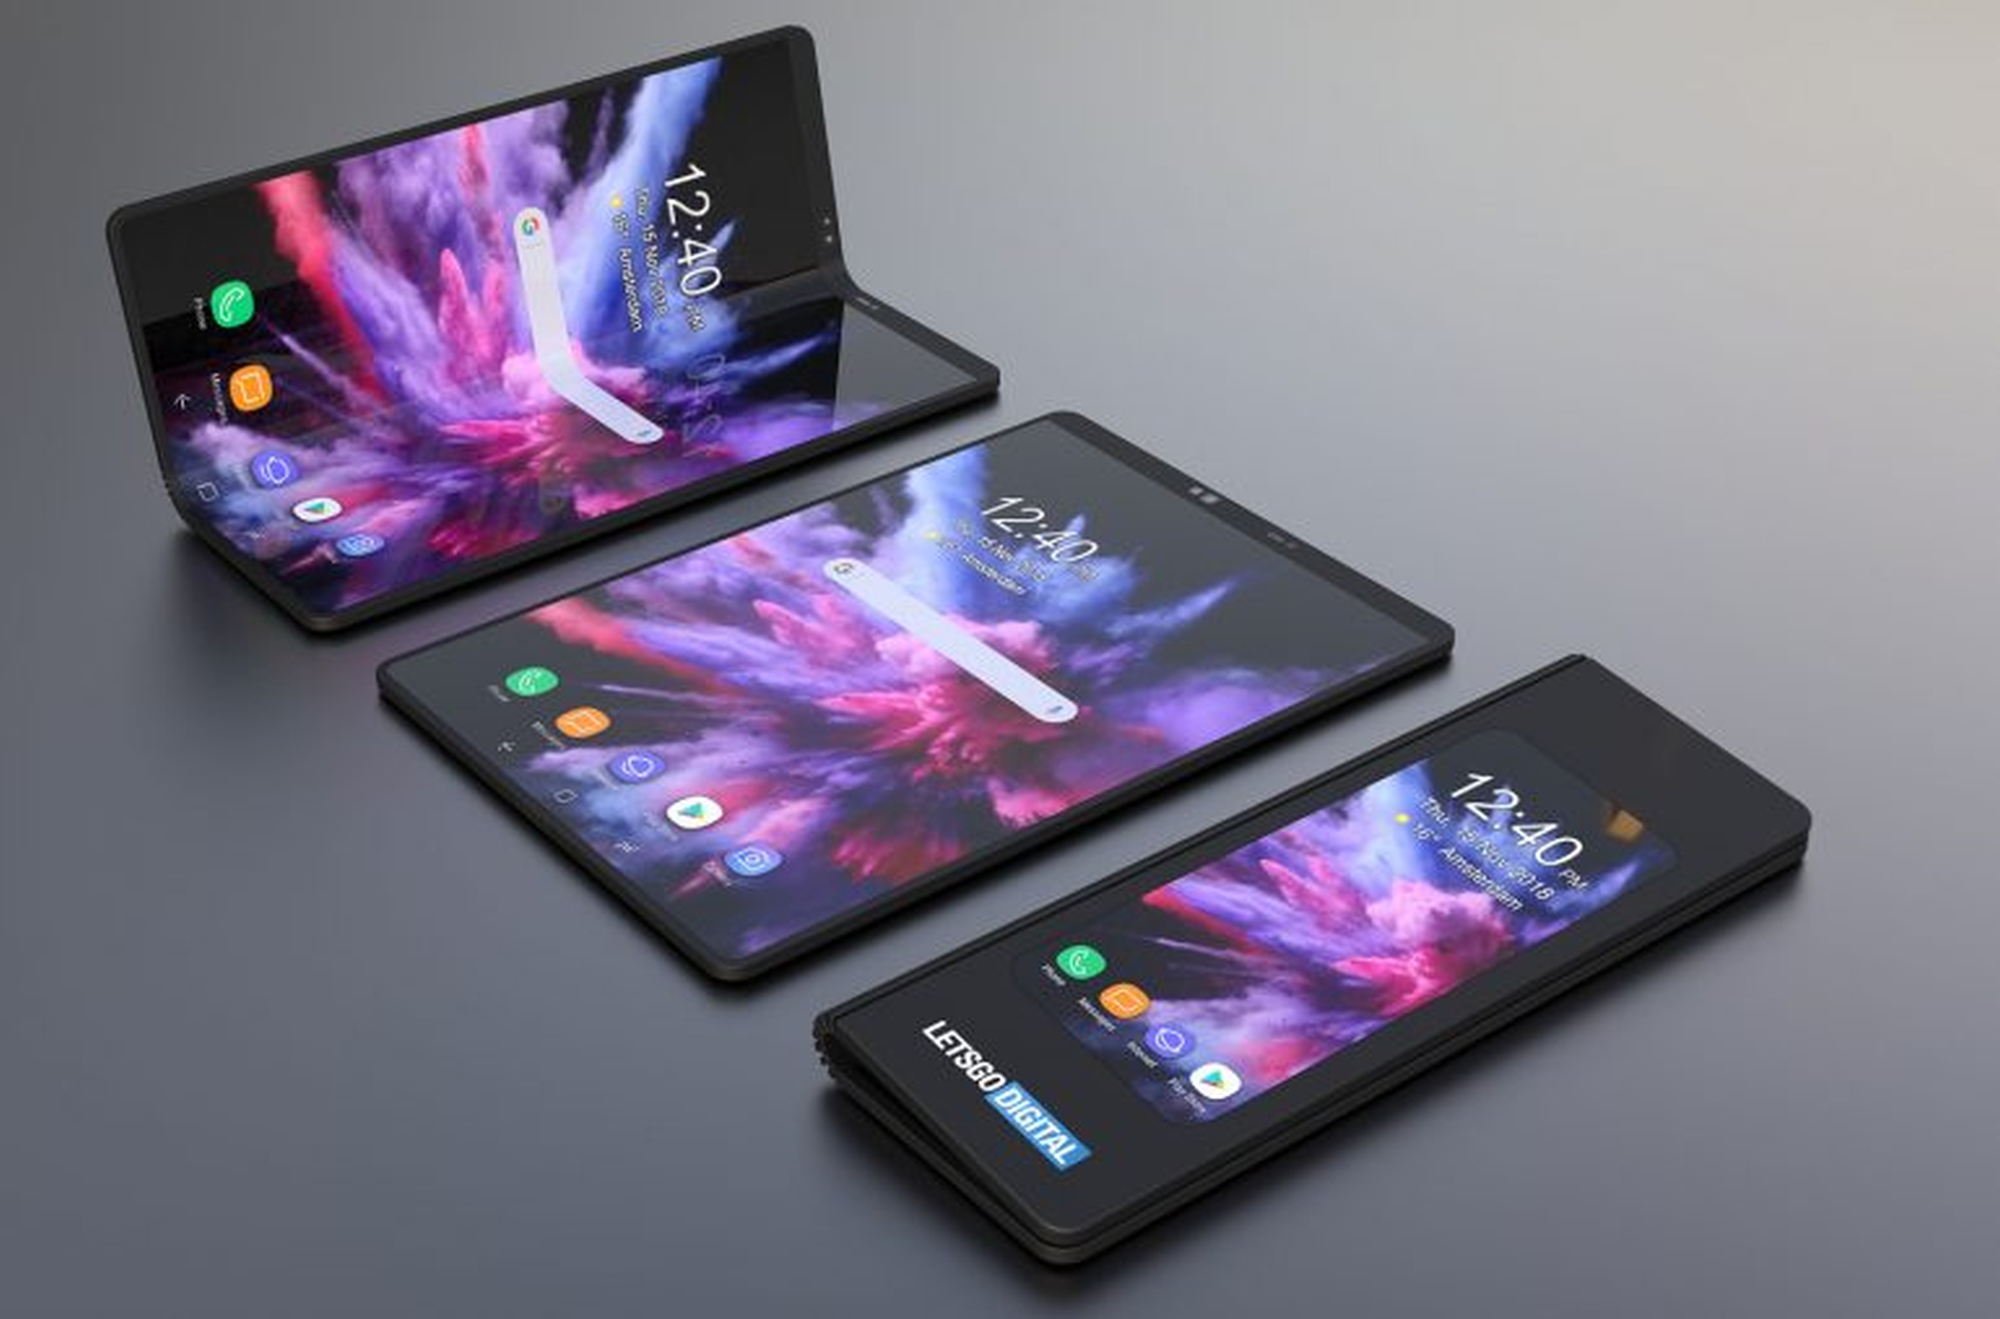 Photo Uniknuté video na YouTube zachytáva Samsung Galaxy Fold so záhybom na displeji